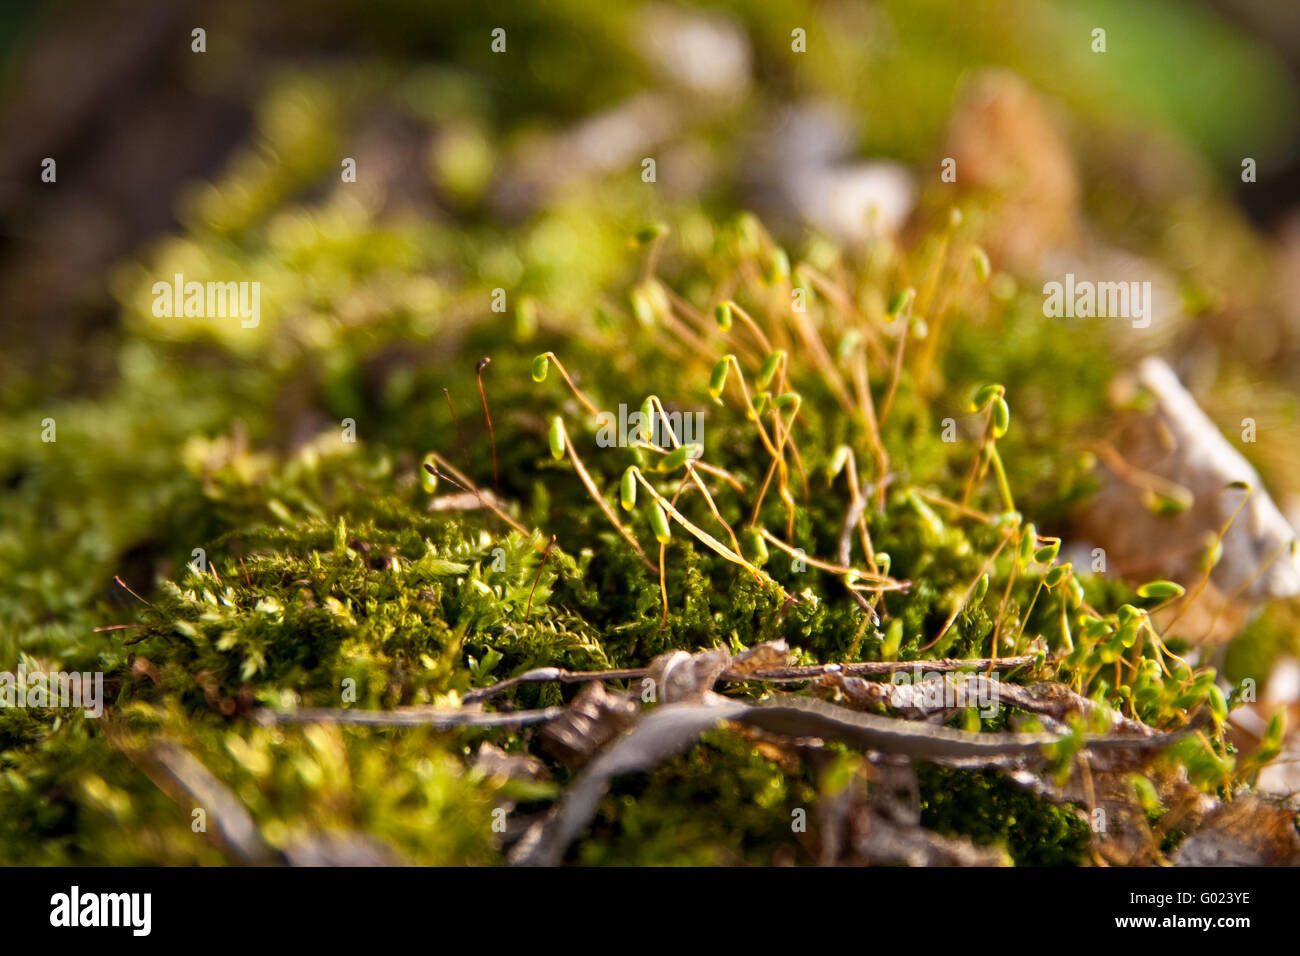 The young green moss in their natural habitat - Stock Image